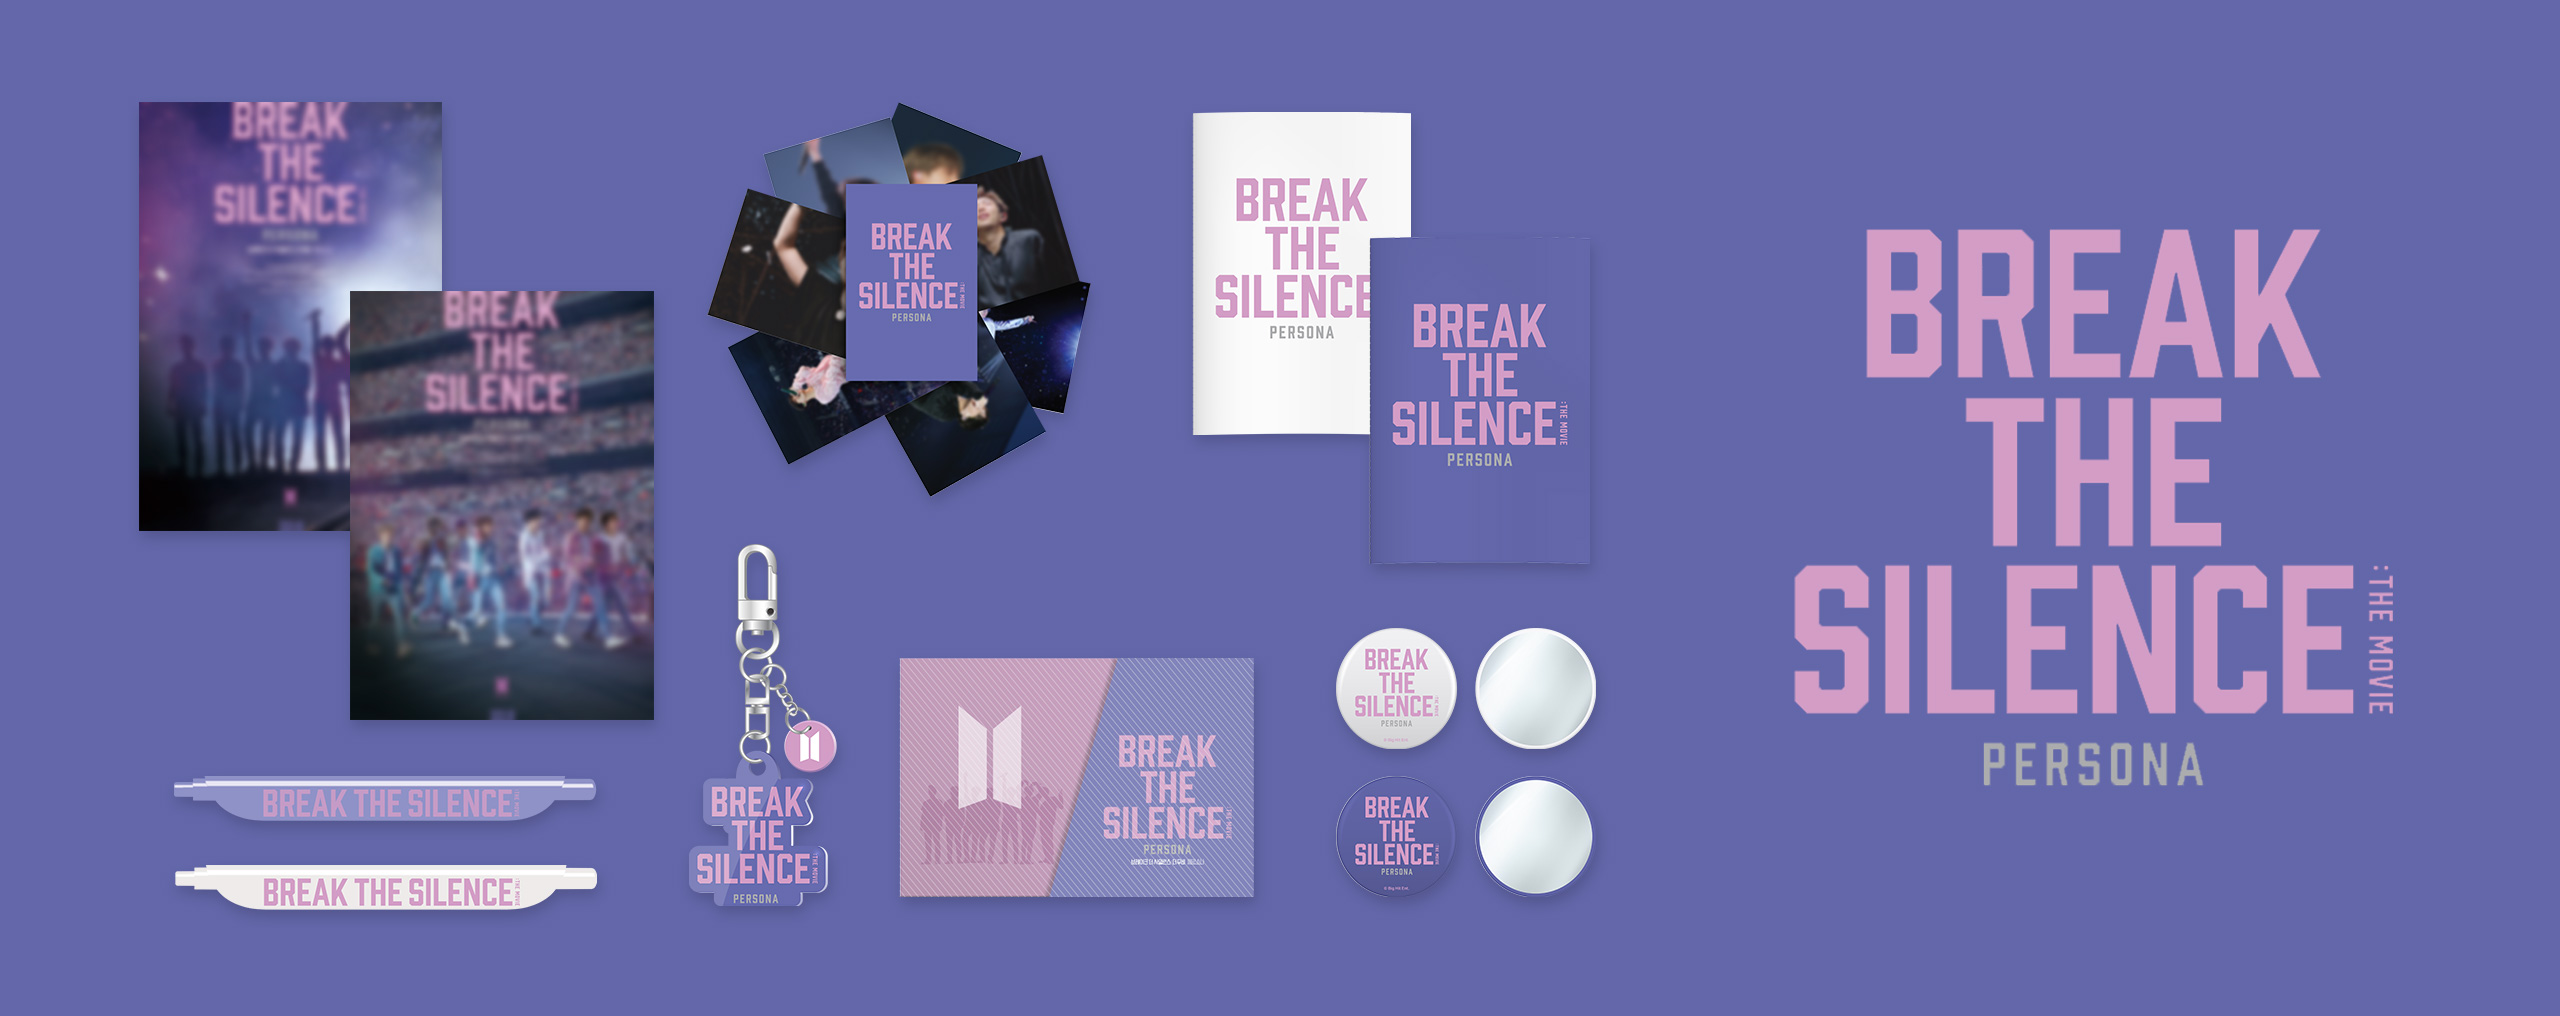 BREAK THE SILENCE OFFICIAL MERCHANDISE